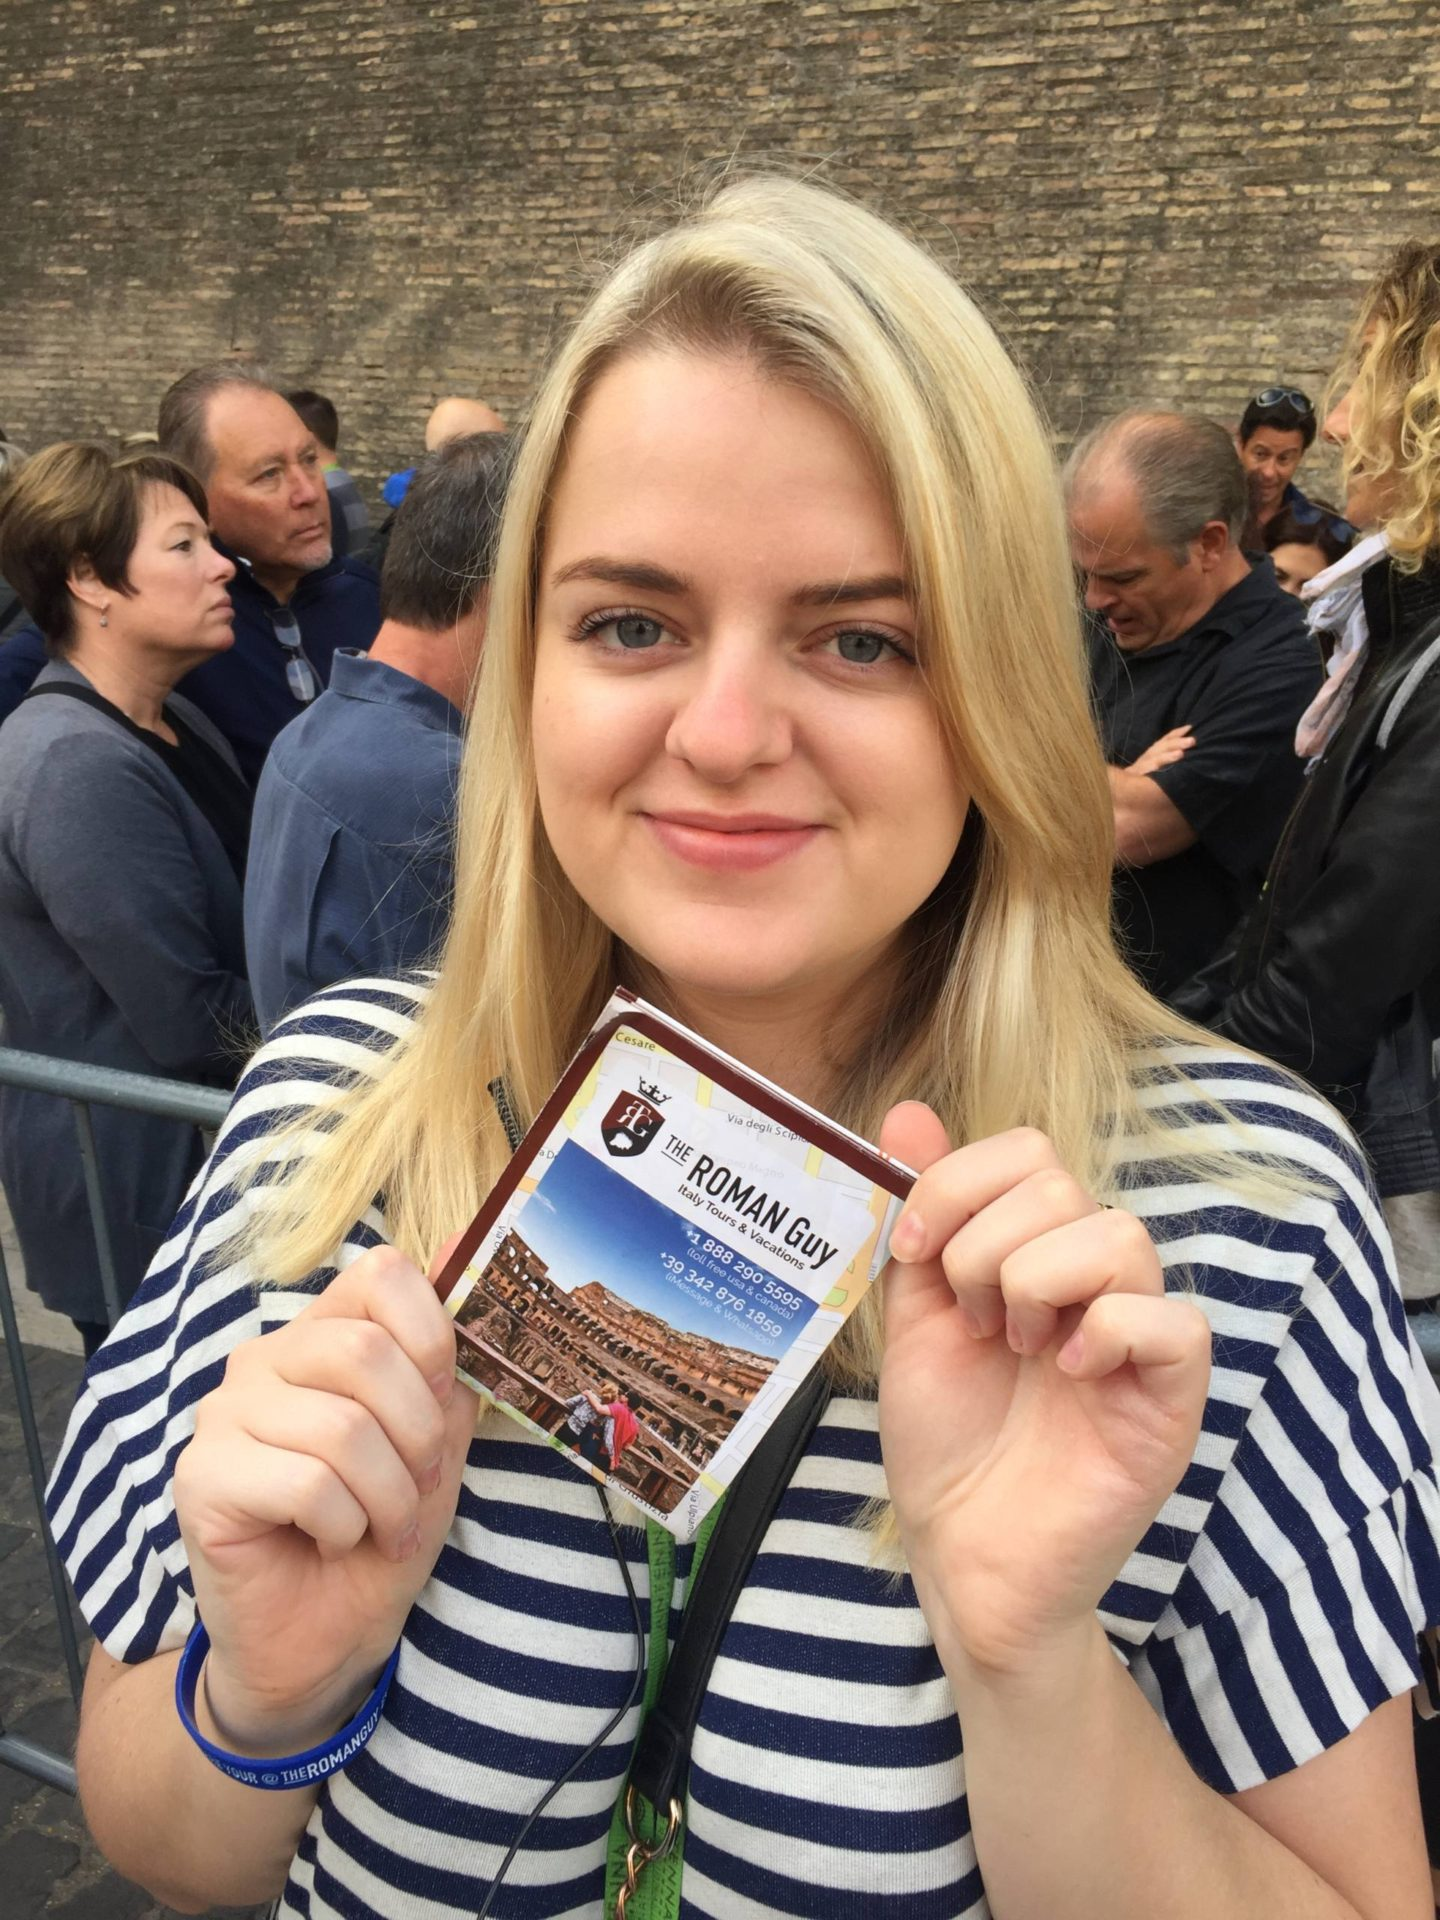 Emma-Victoria-Stokes-The-Roman-Guy-Tour-Vatican-Tour-Privileged-Entrance-Sistine-Chapel